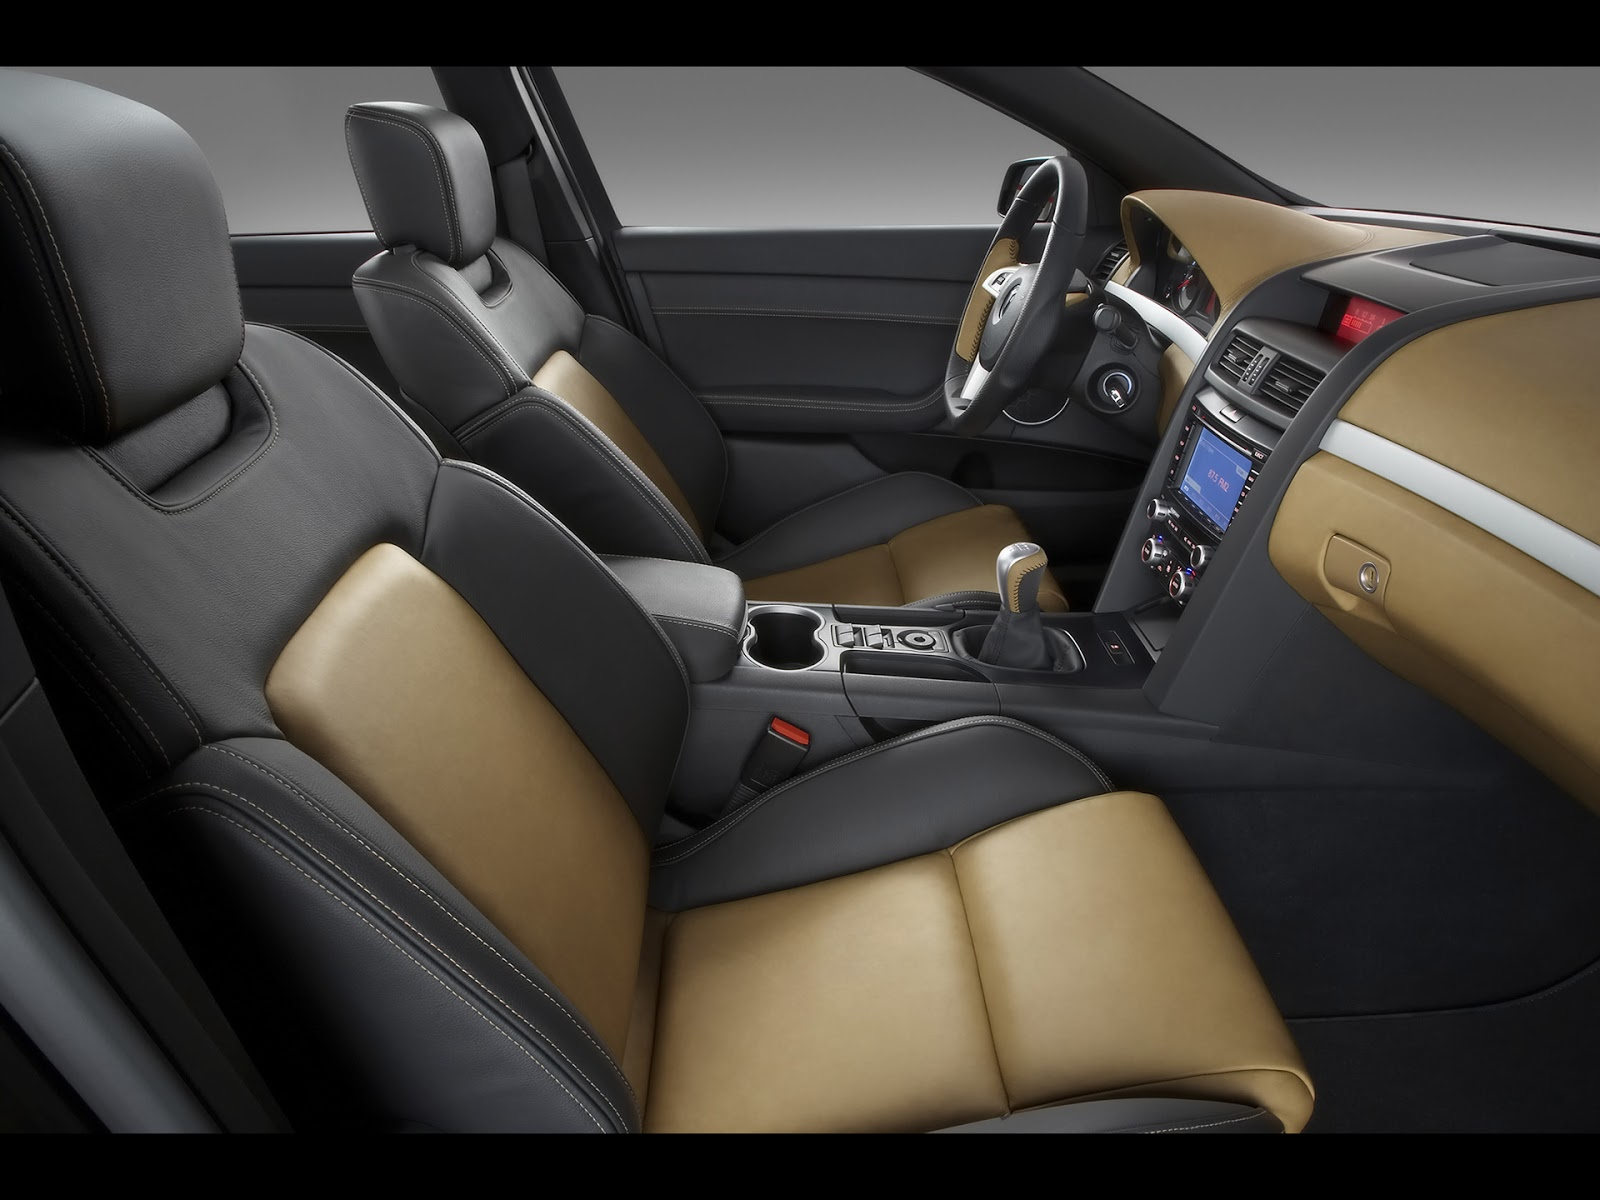 New Cars In India 2013 Latest Car News India The Interior Design